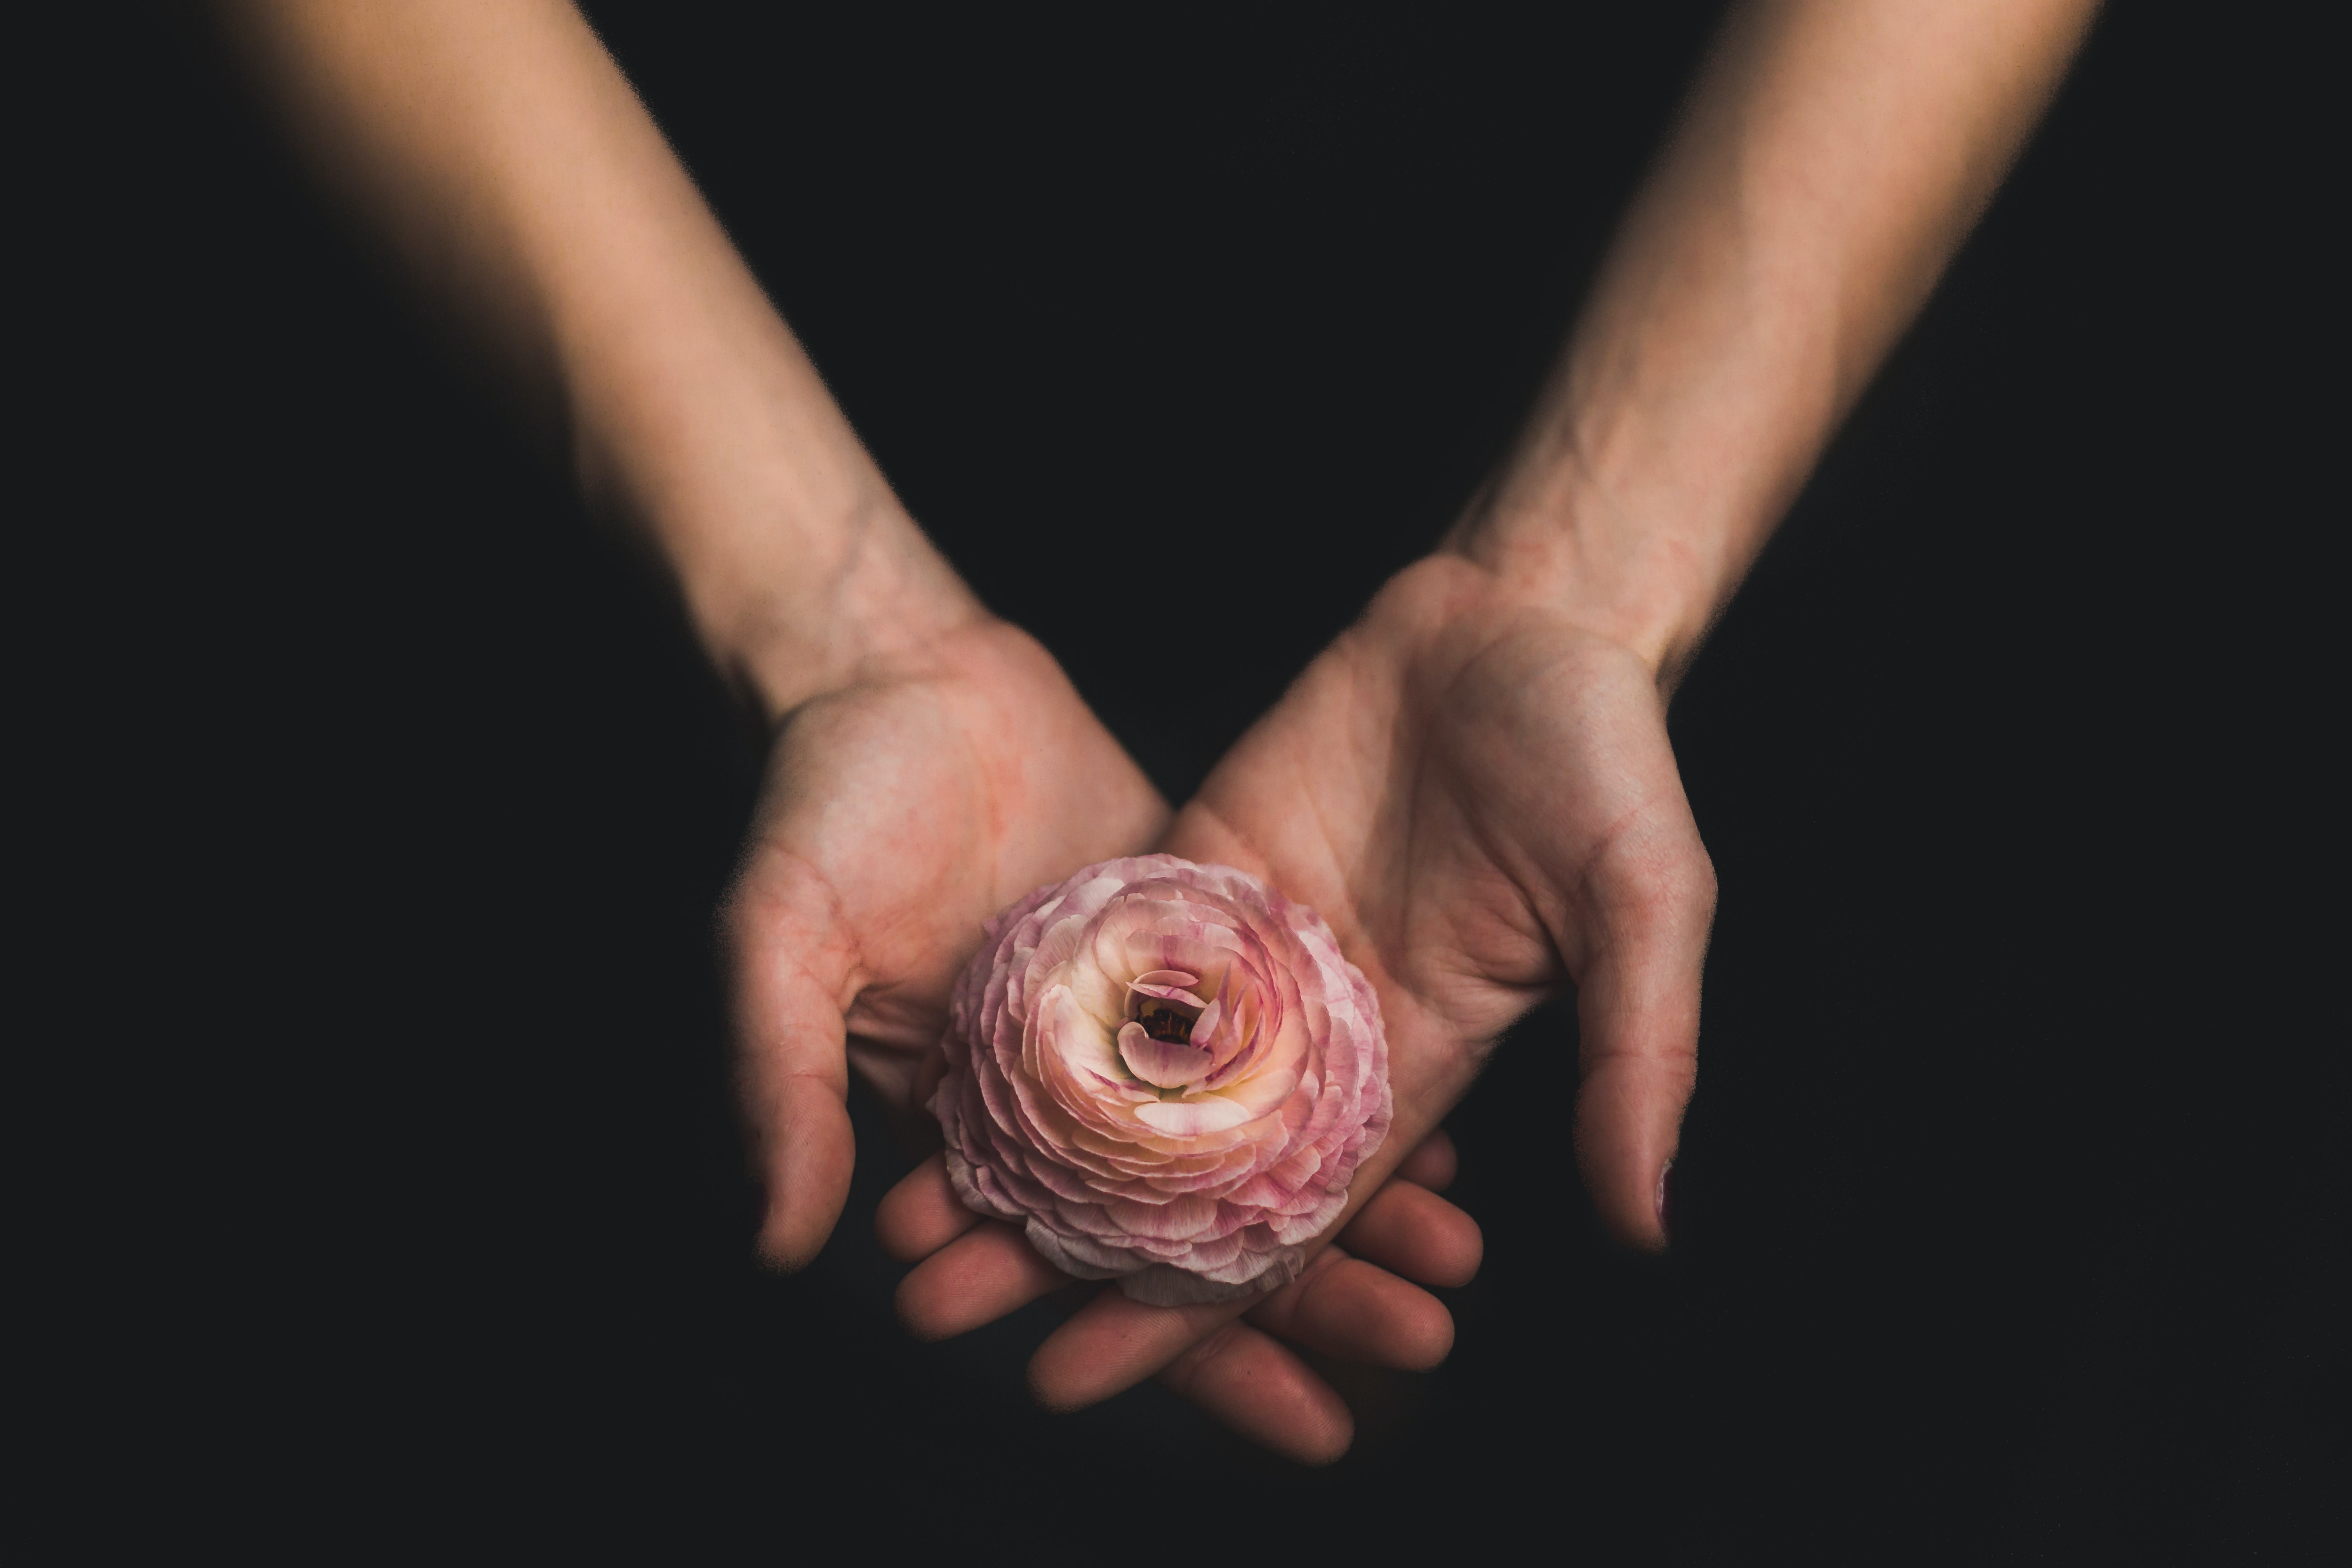 A person's crossed hands holding a pink peony flower